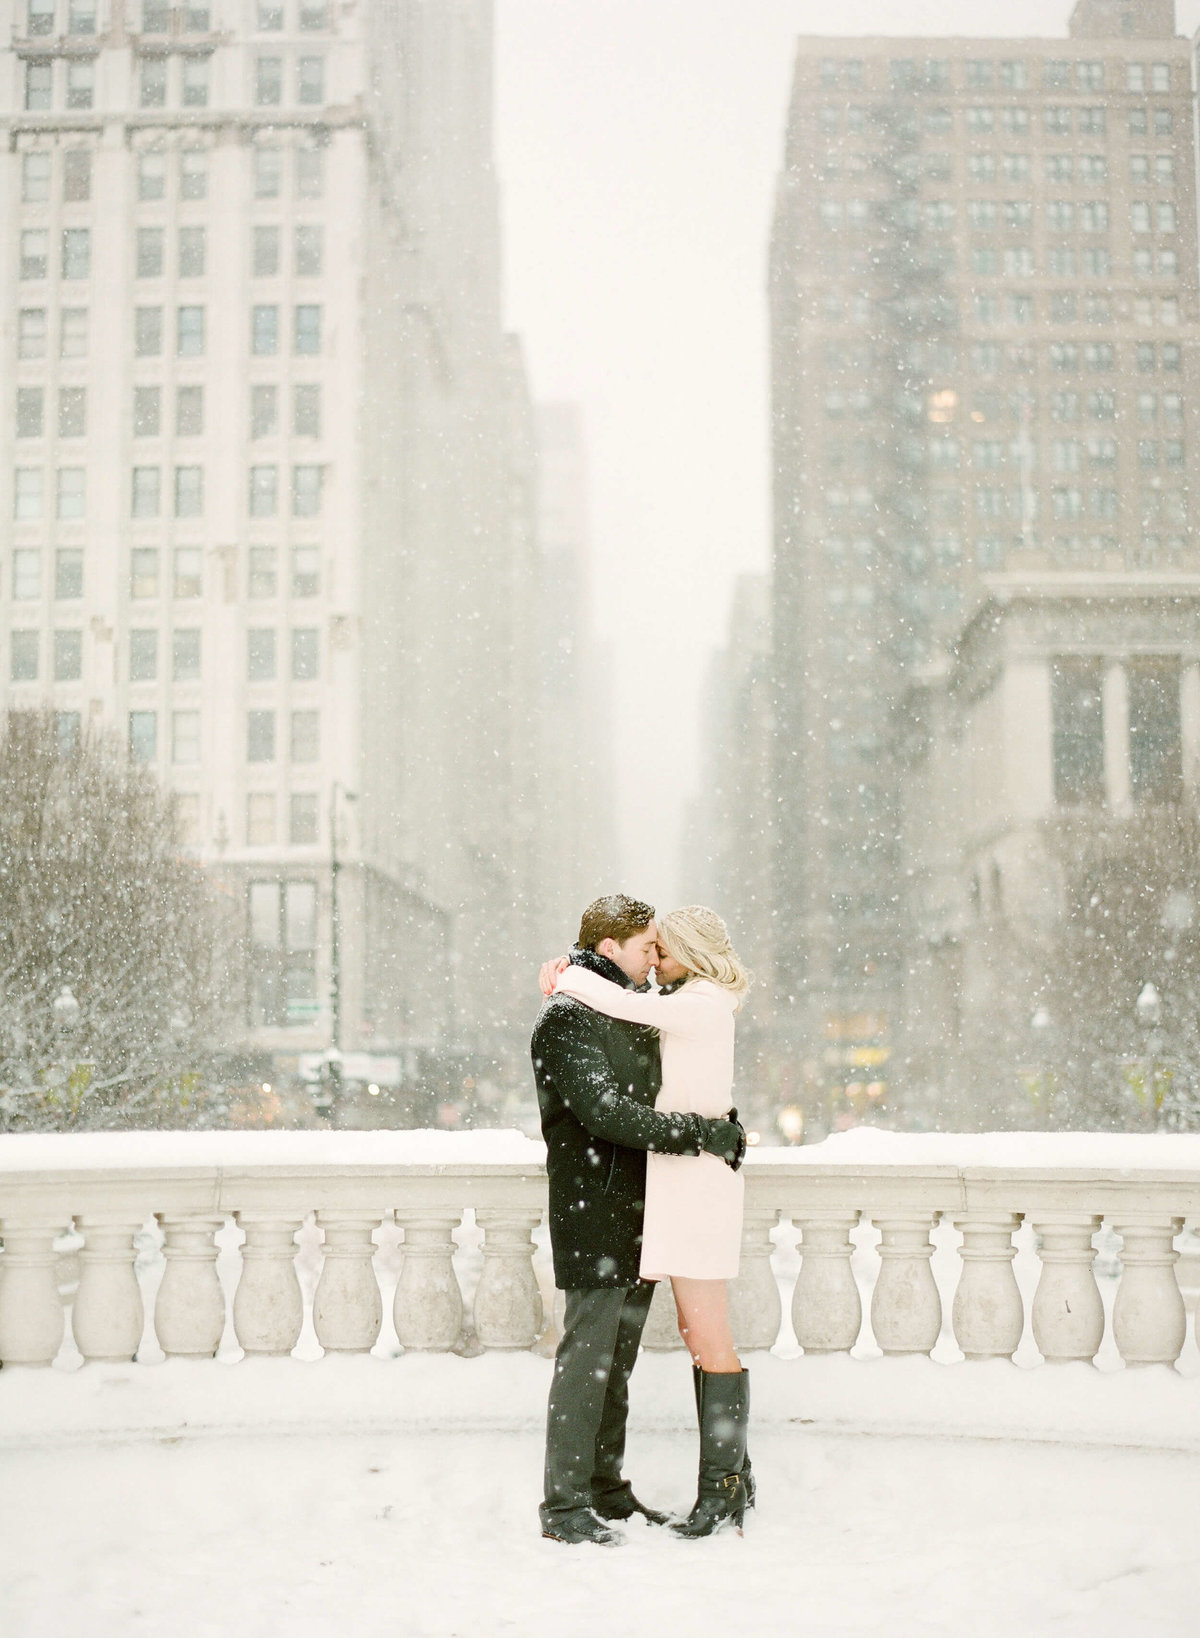 1-KTMerry-winter-weddings-snow